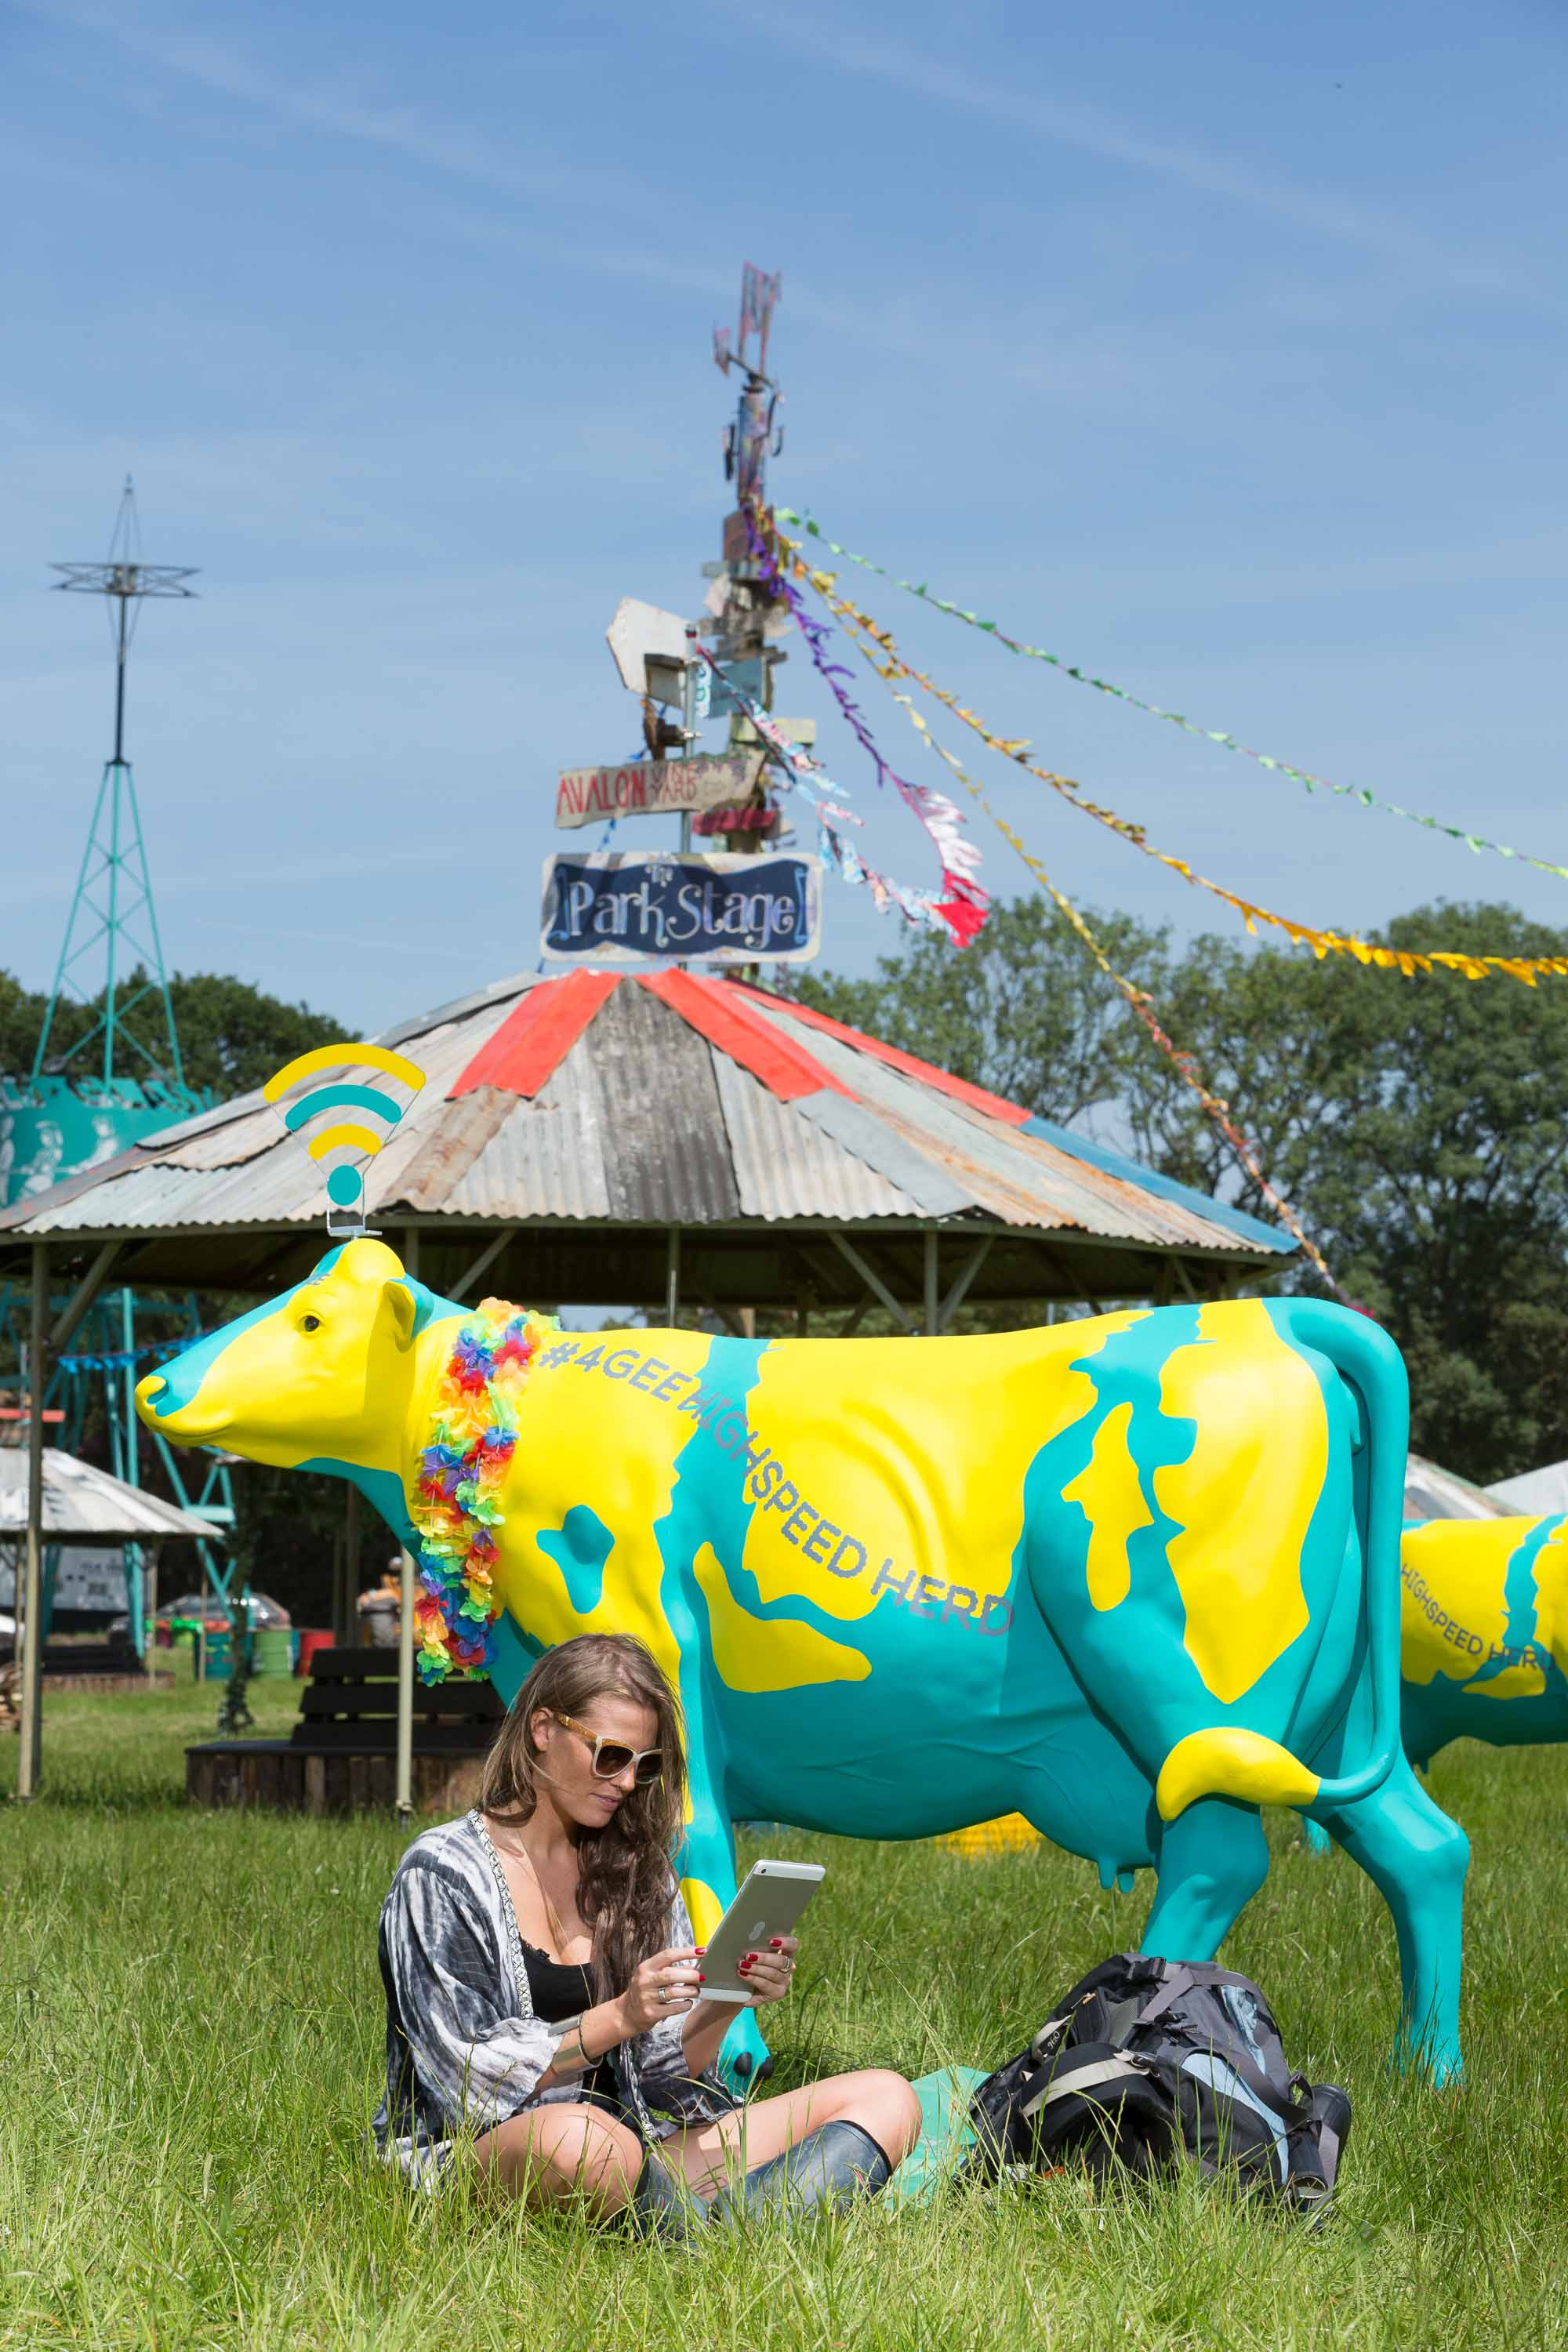 EE Provides Glastonbury With 'Highspeed Herd' for 2014 Festival